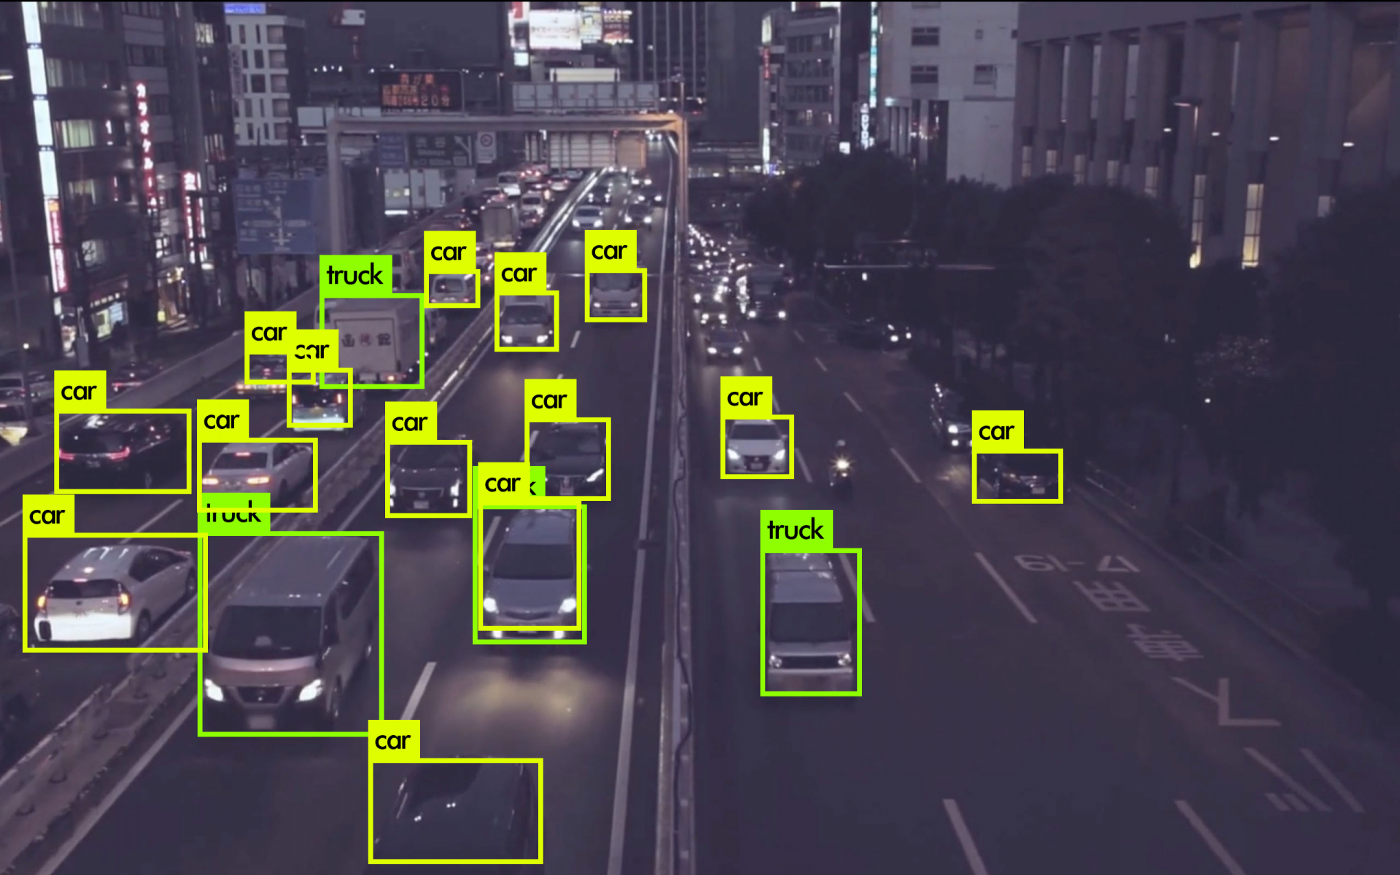 Traffic image with various objects detected using YOLOv3